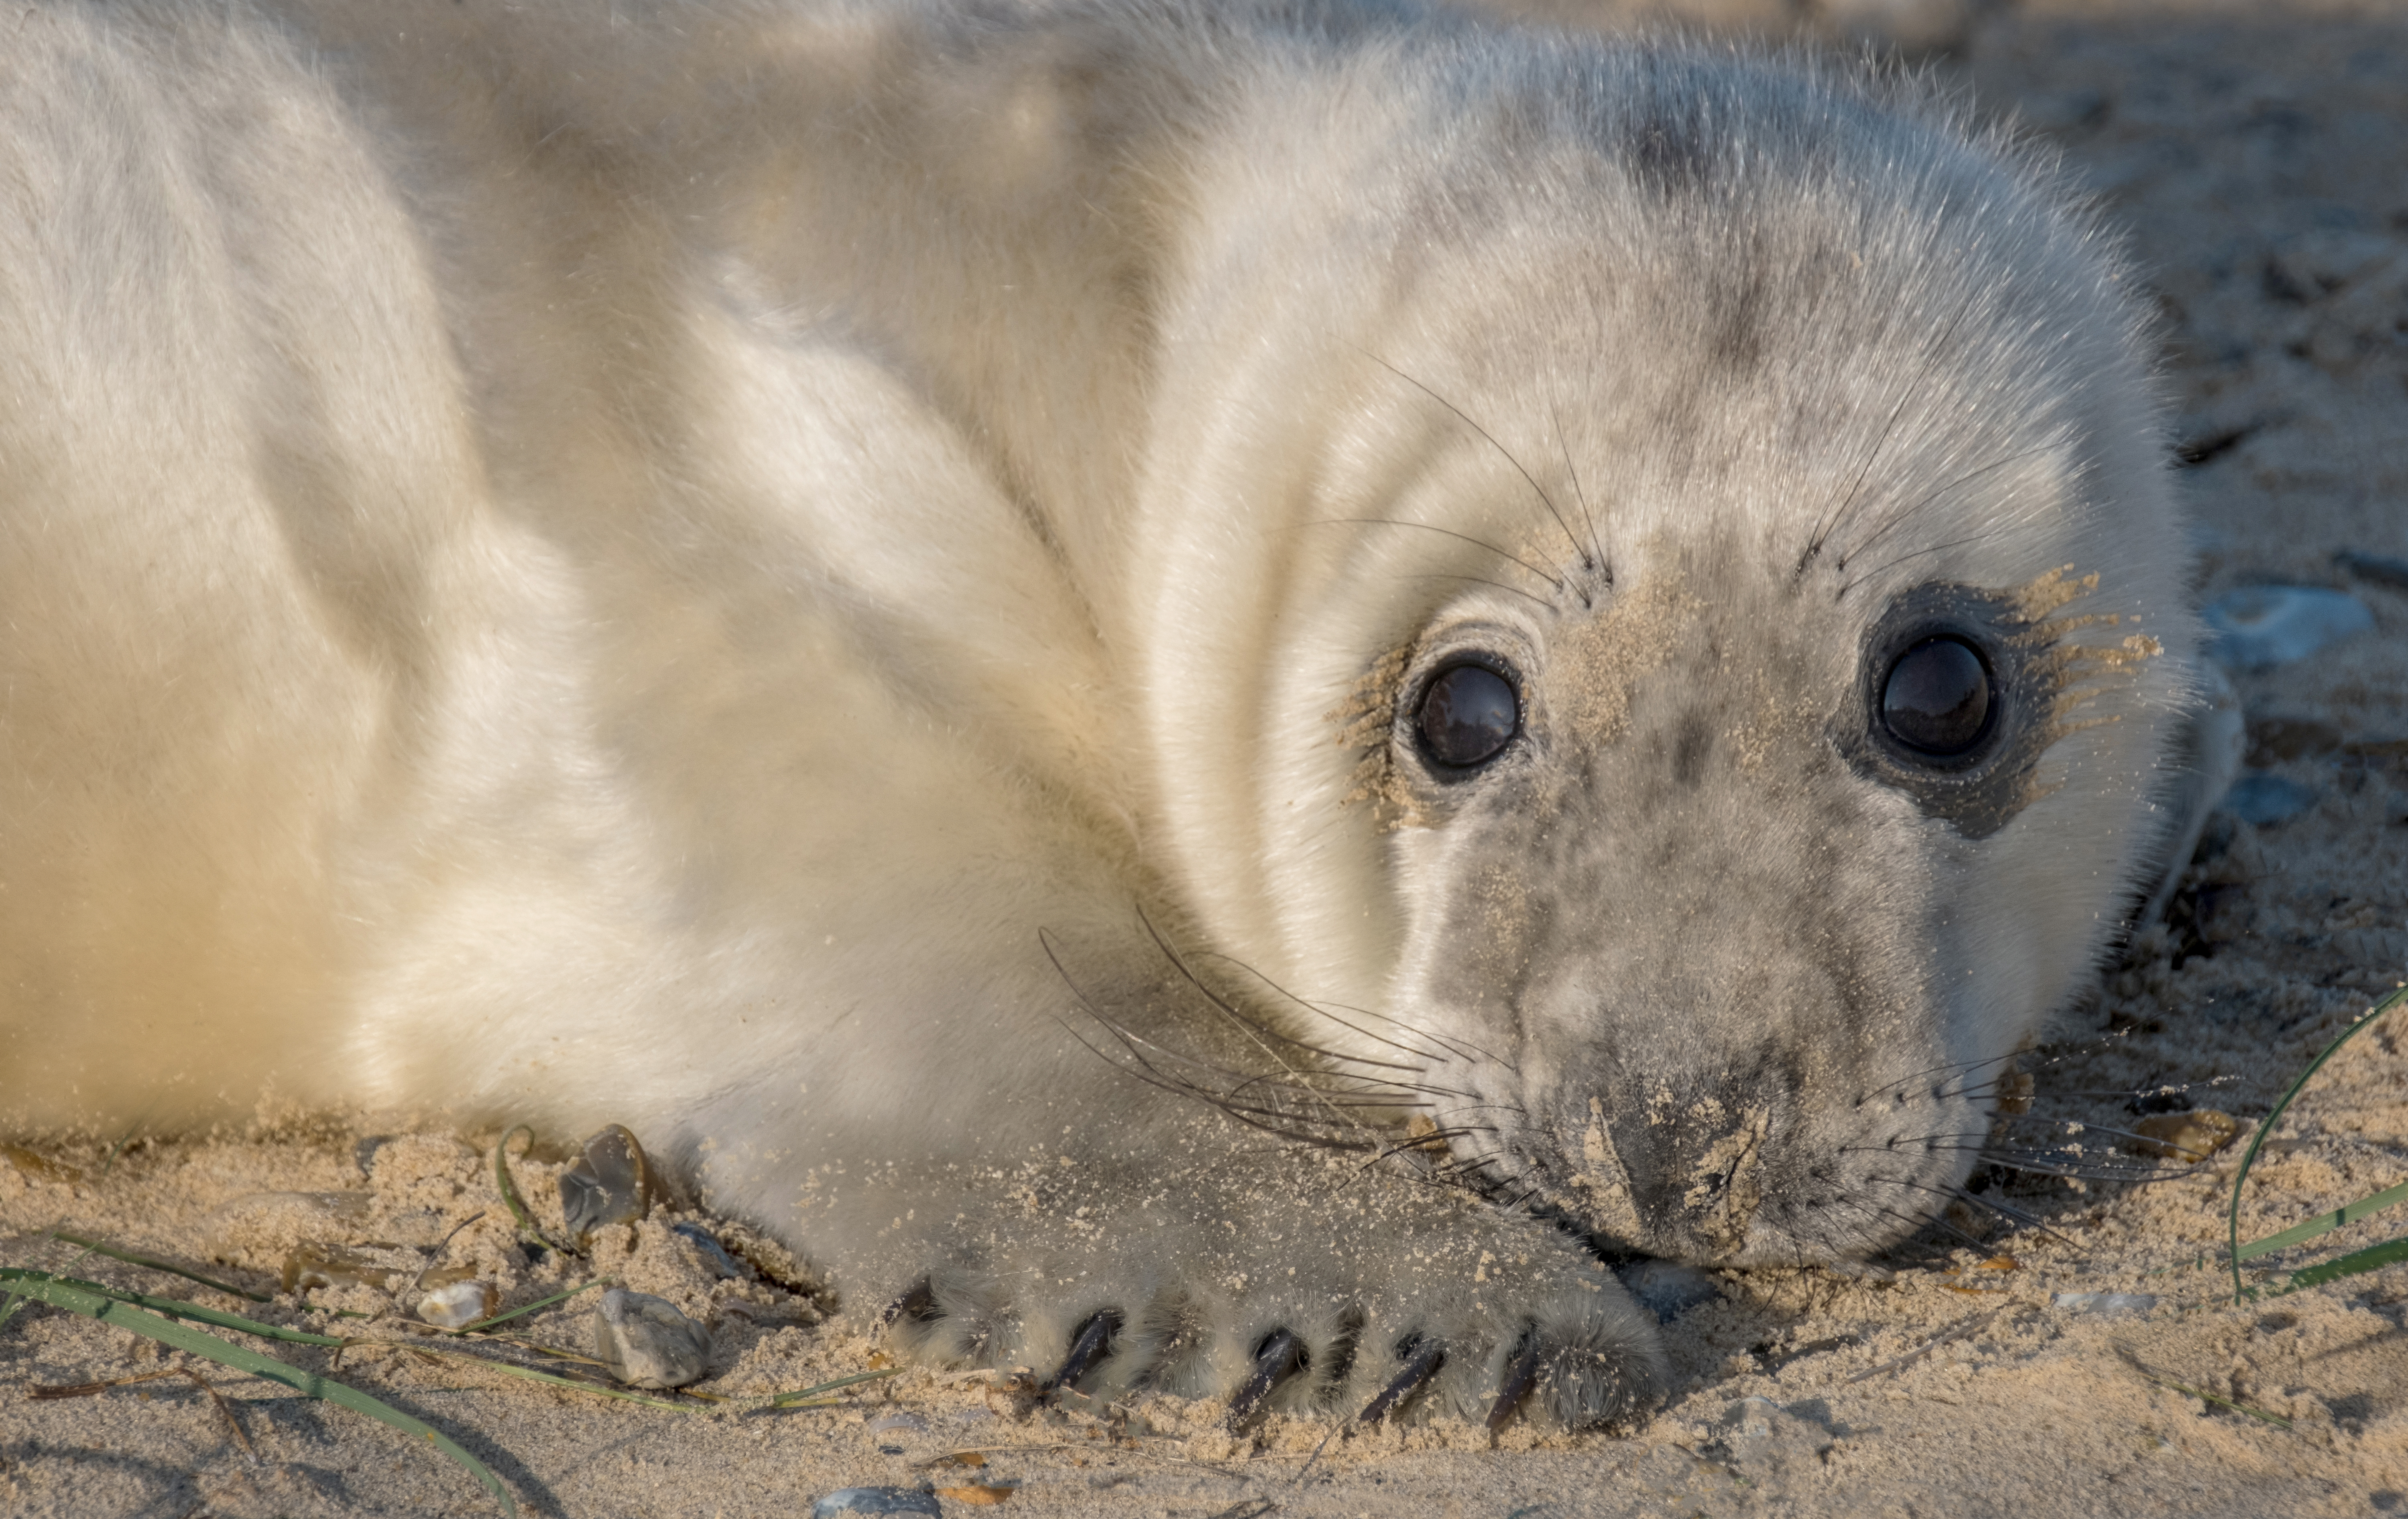 The National Trust is expecting 4,000 grey seal pups to be born at Blakeney this winter (National Trust/Hanne Siebers/PA)